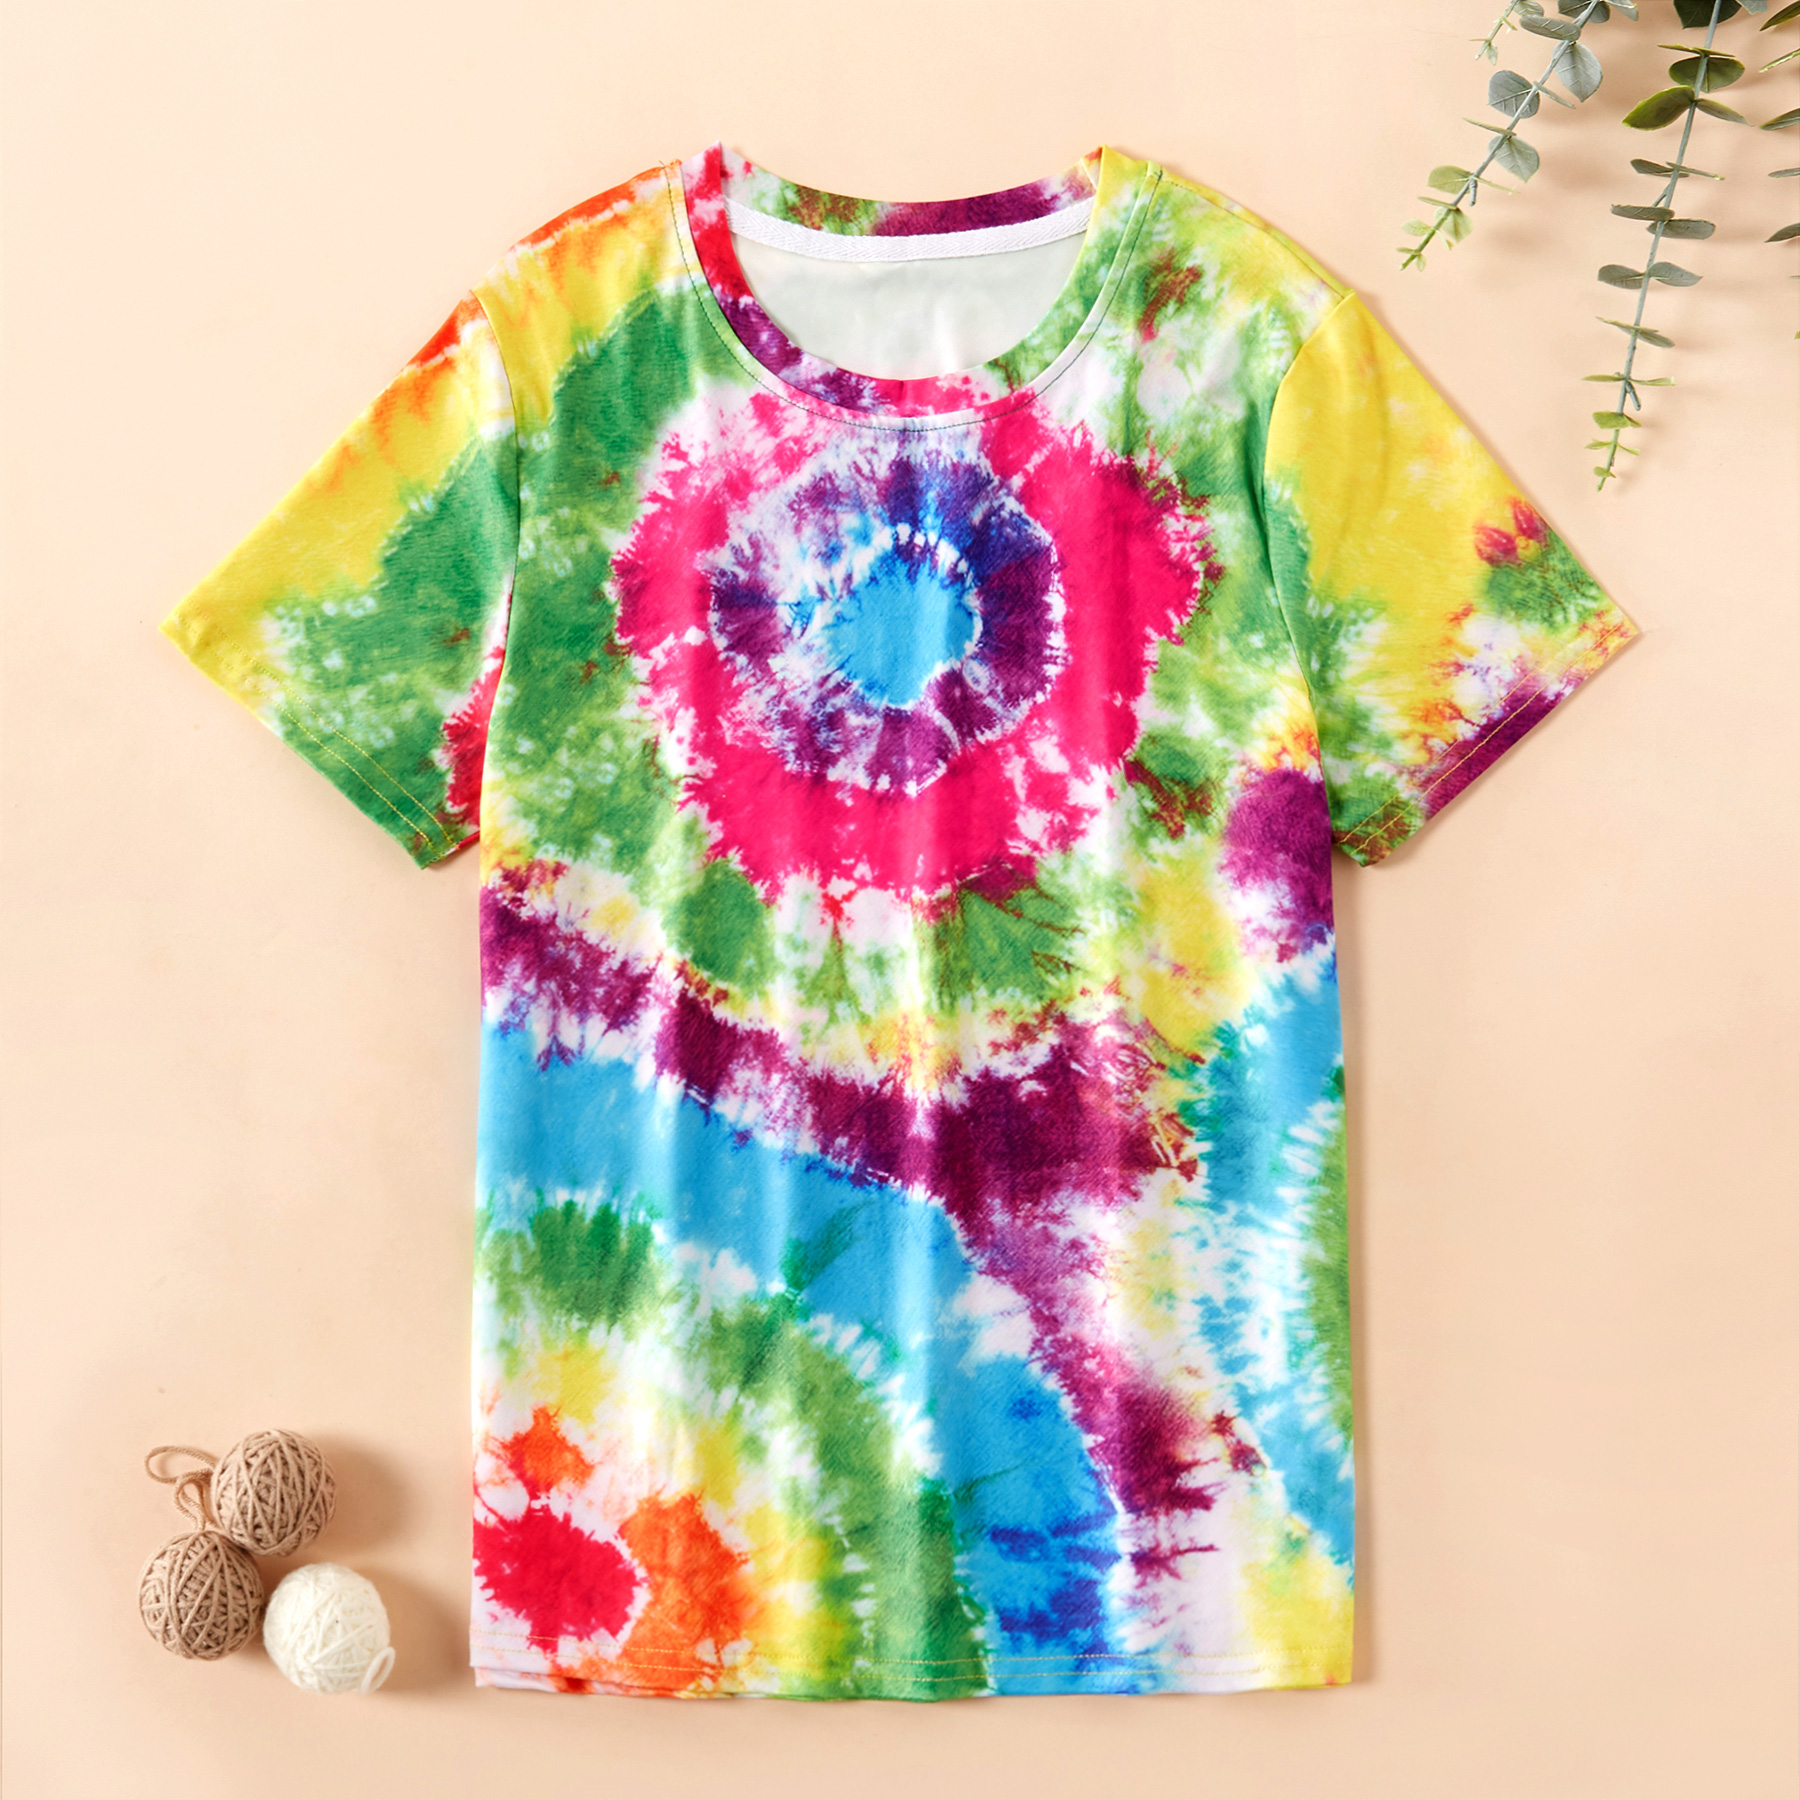 Trendy Colorful Tie-dyed Short-sleeve Tee